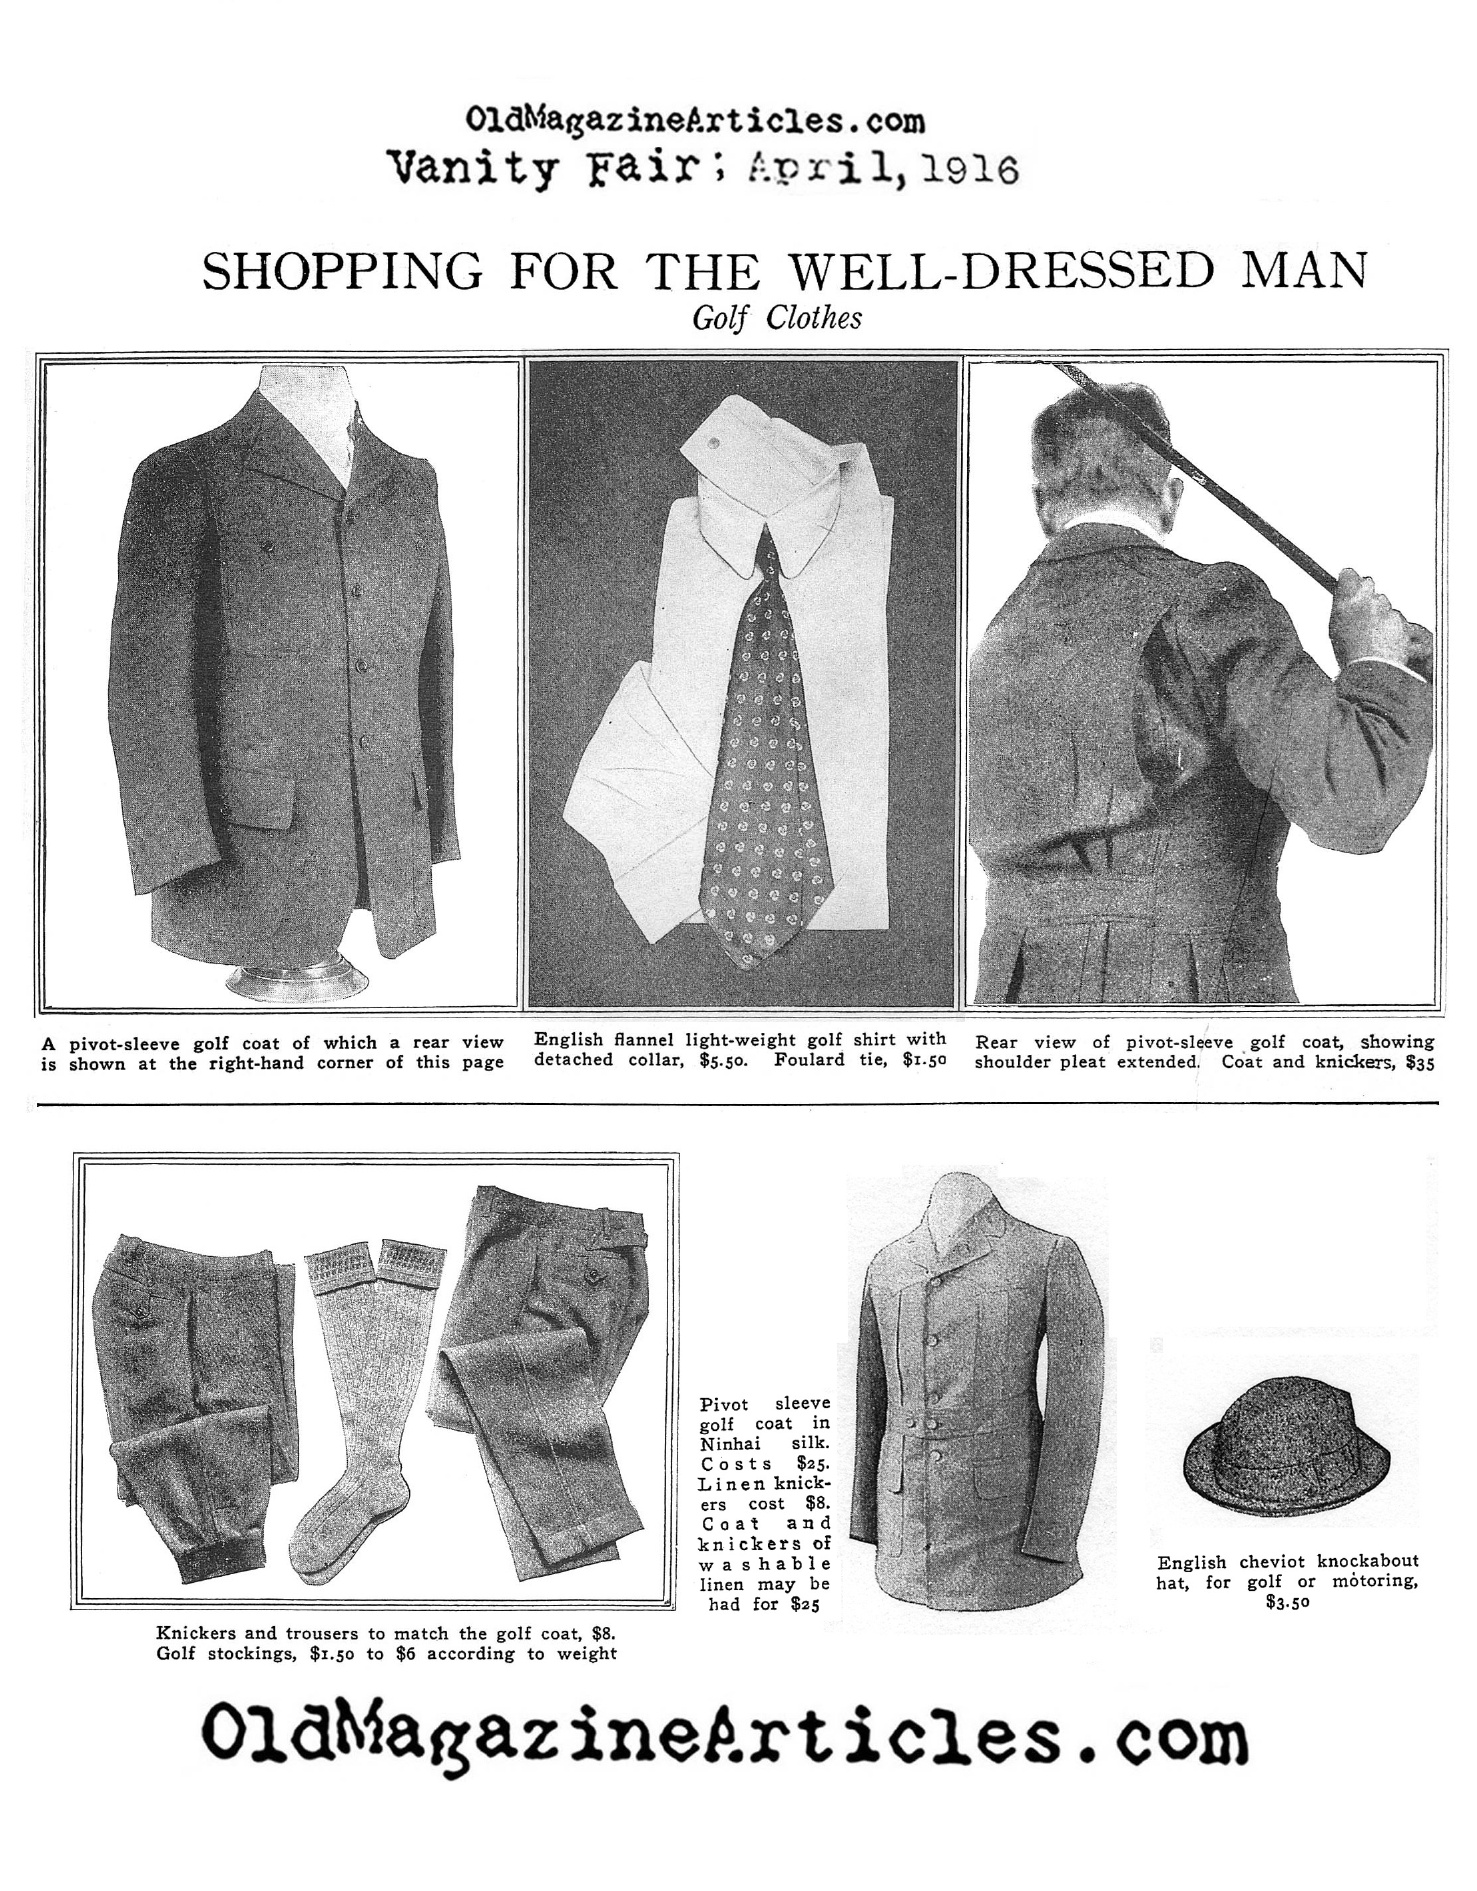 The Action-Back Jacket for the Golfing Man  (Vanity Fair Magazine, 1916)